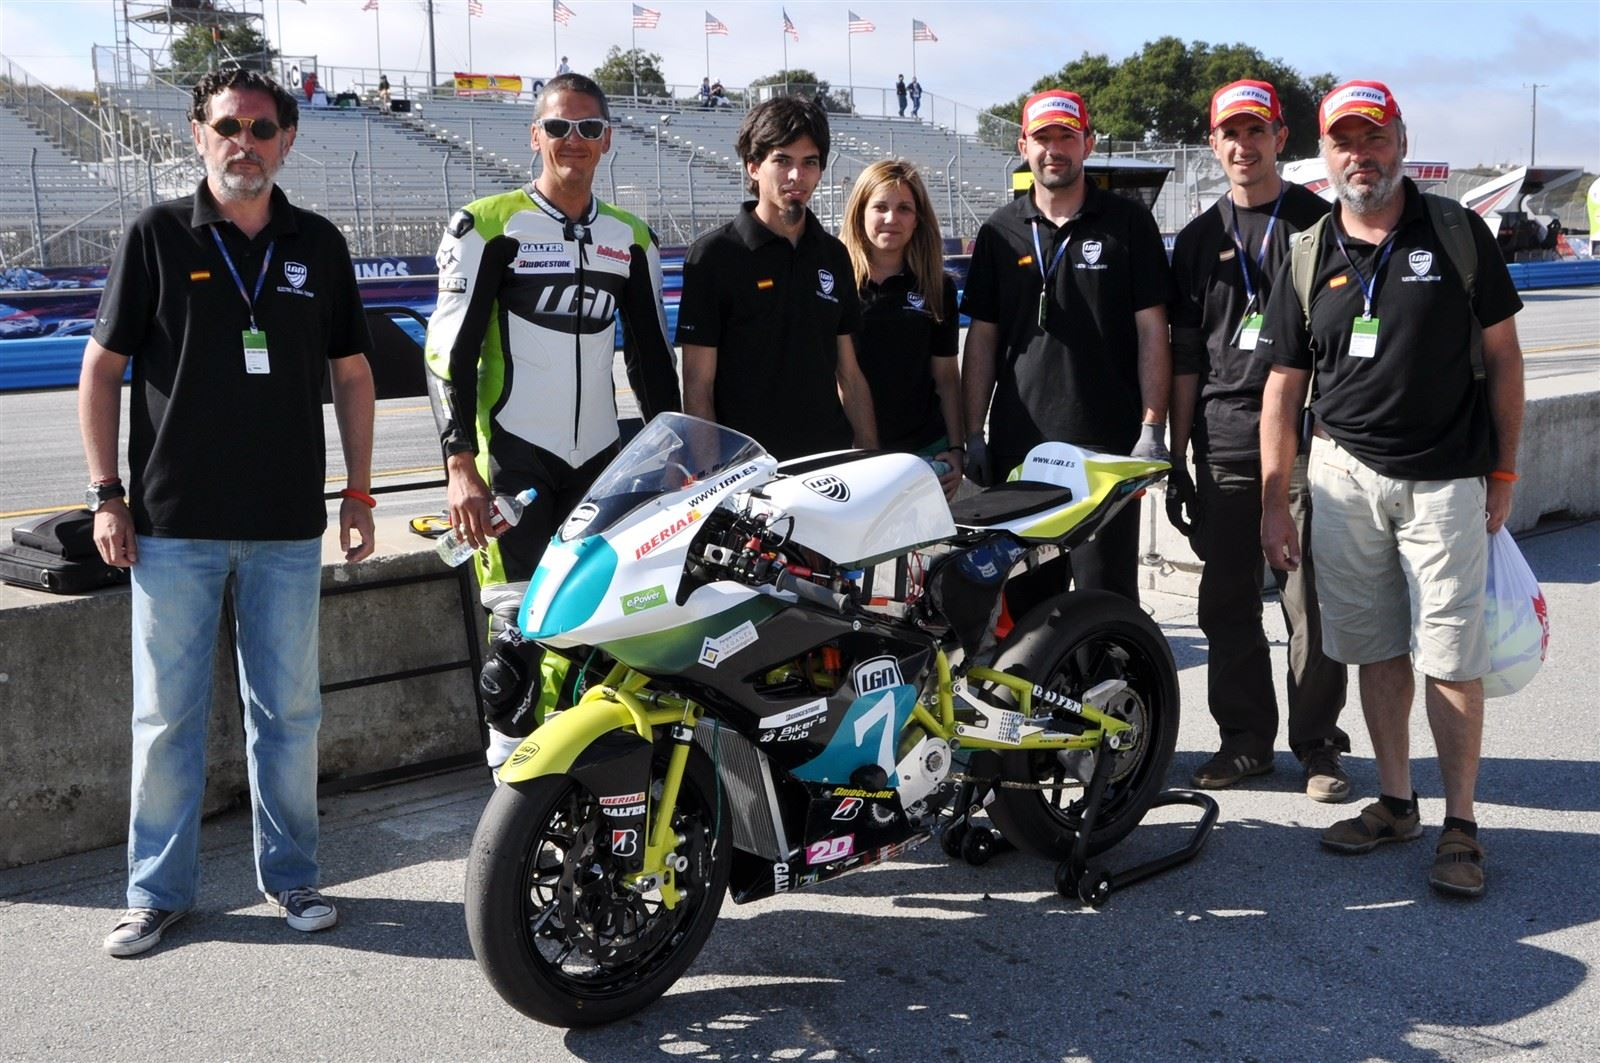 Team LGN before qualifying race